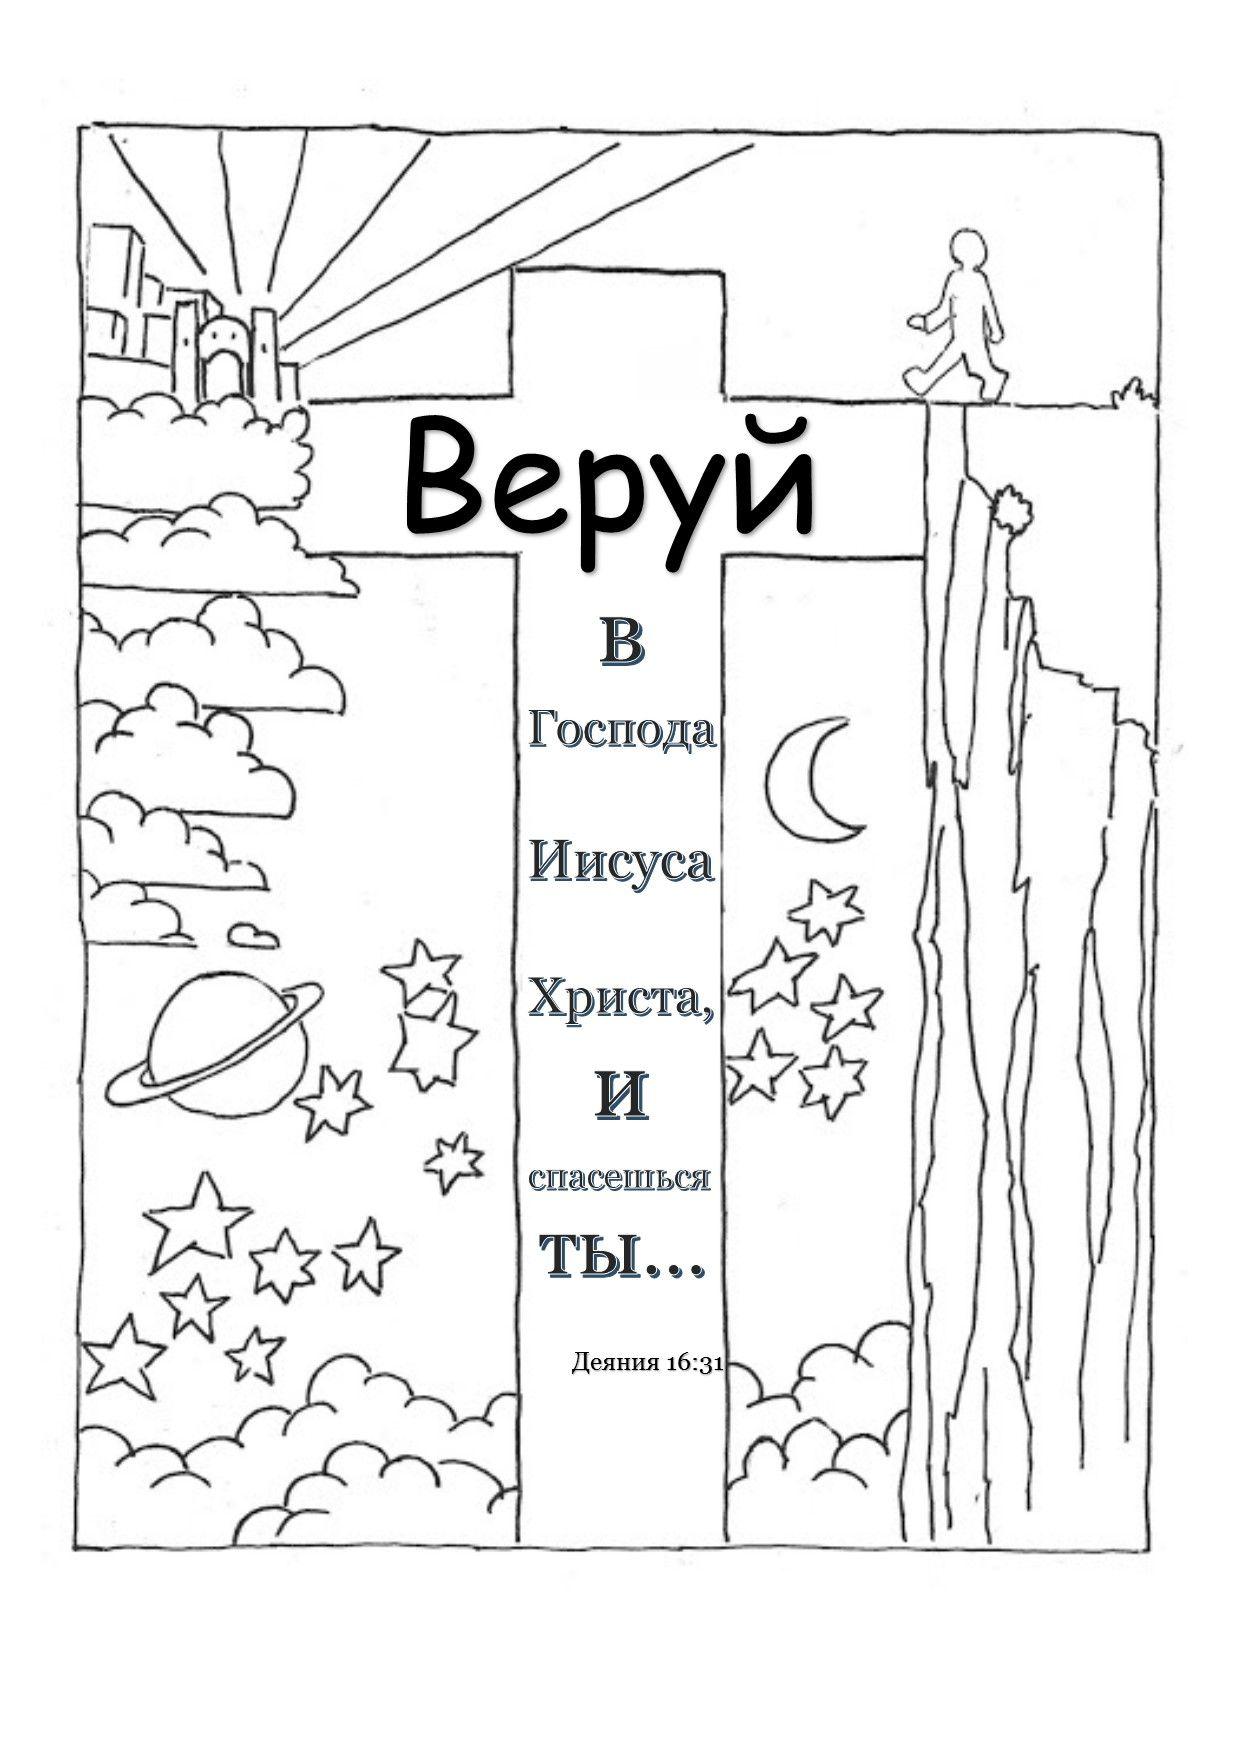 Acts 16 31 Coloring Sheet